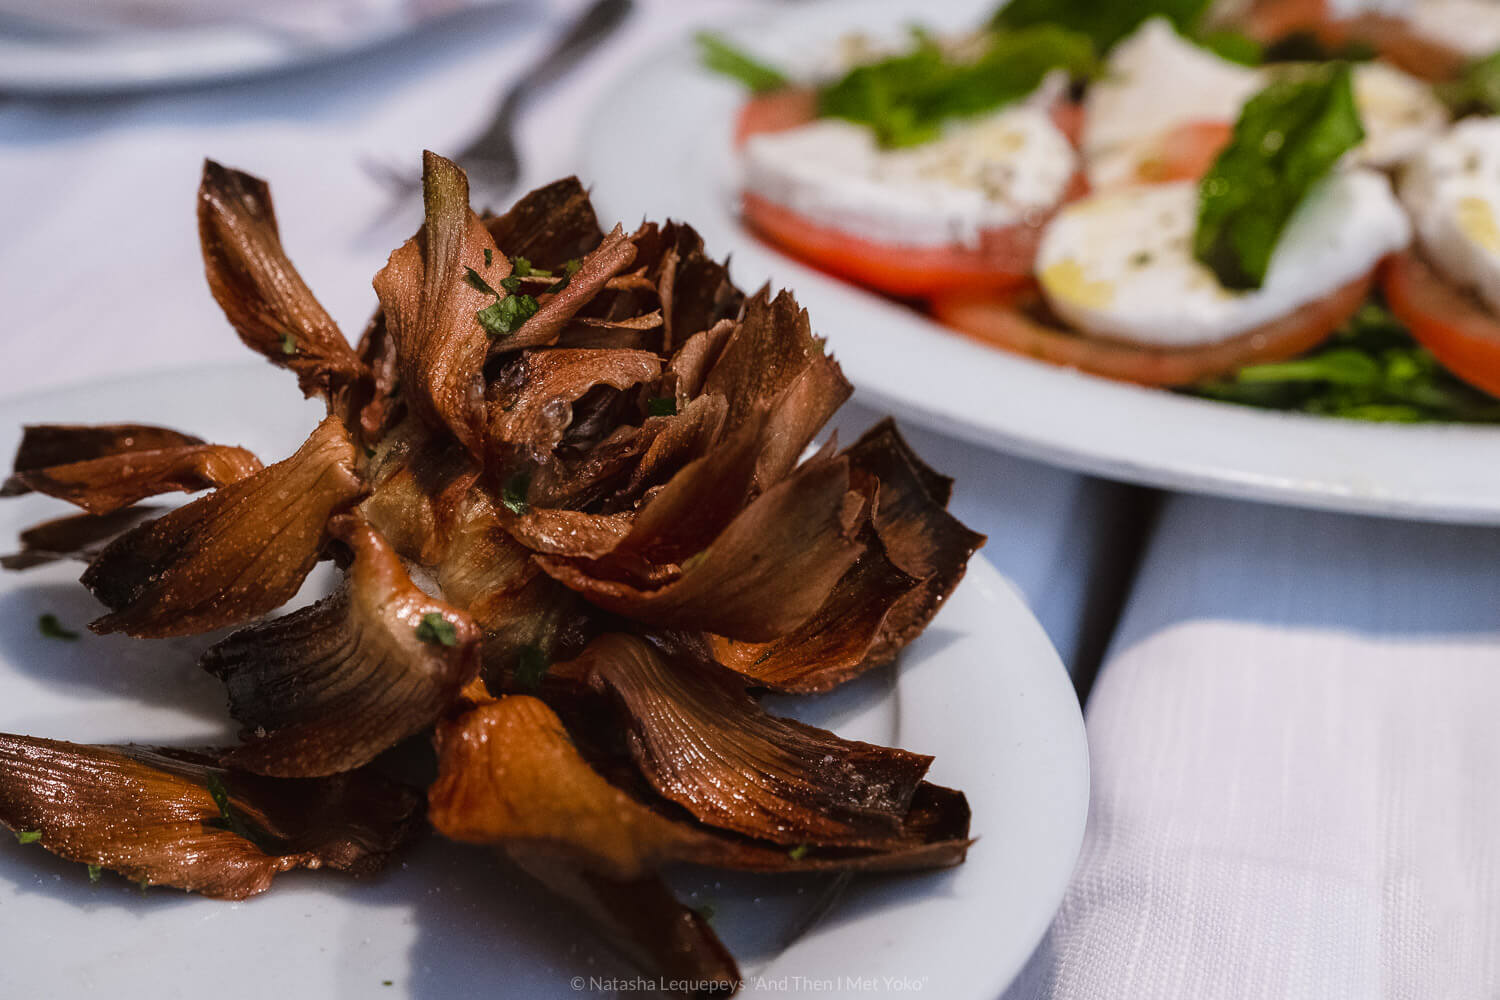 """Fried artichoke in the Jewish Ghetto, Rome. Travel photography and guide by © Natasha Lequepeys for """"And Then I Met Yoko"""". #rome #jewishghettorome #italy #fujifilm #travelphotography"""